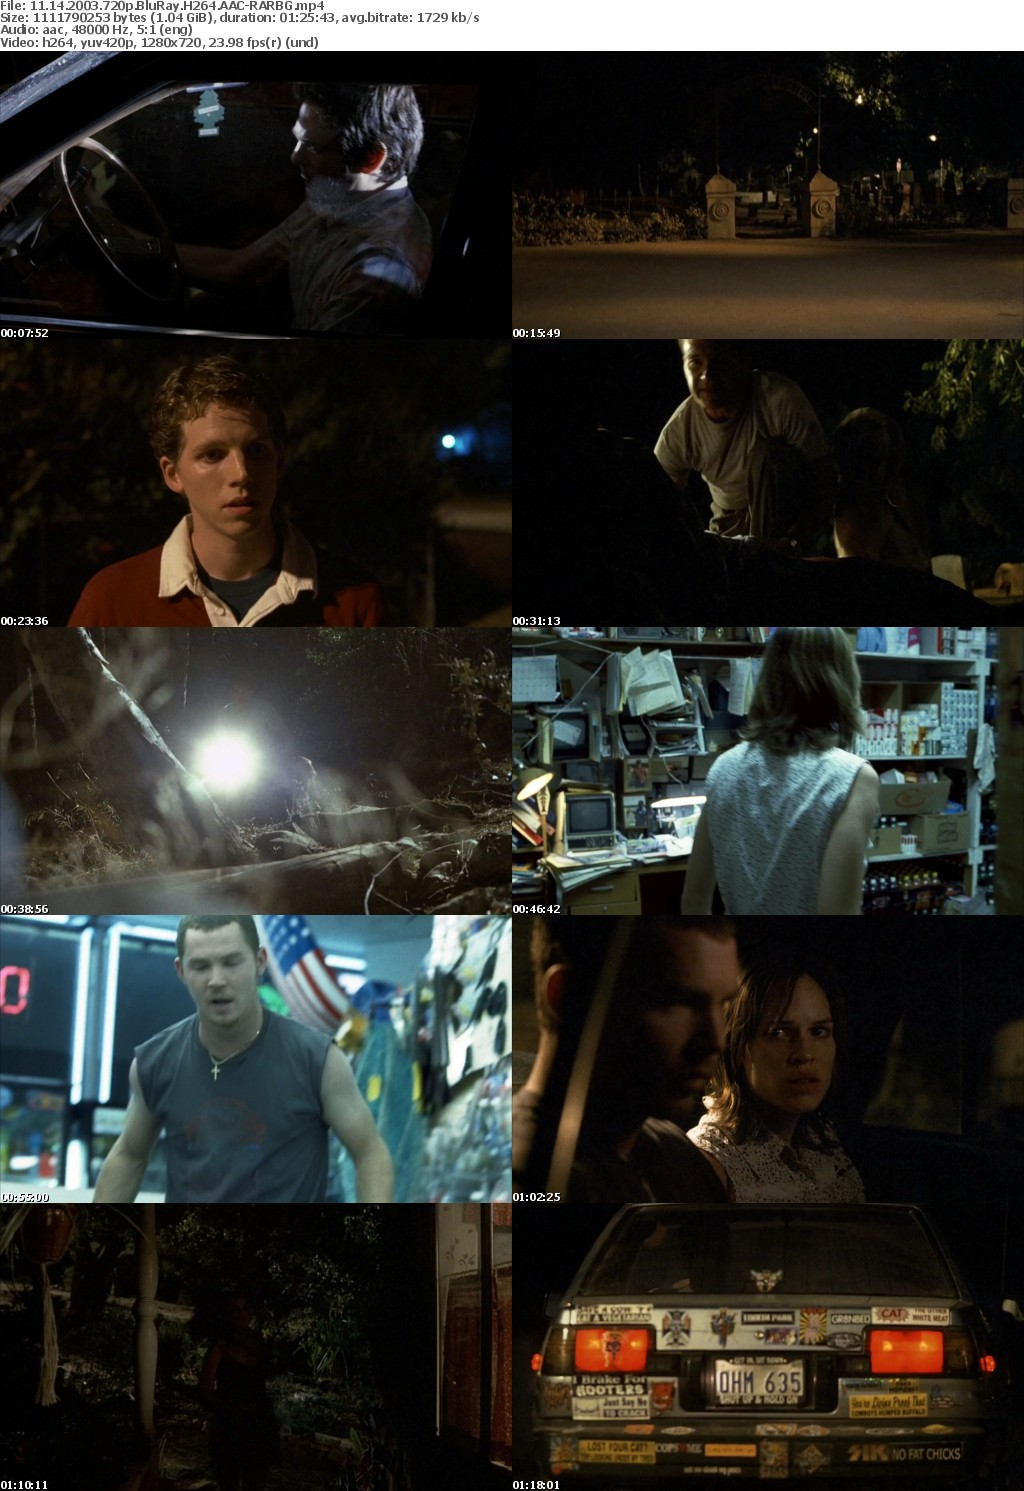 11 14 2003 720p BluRay H264 AAC-RARBG